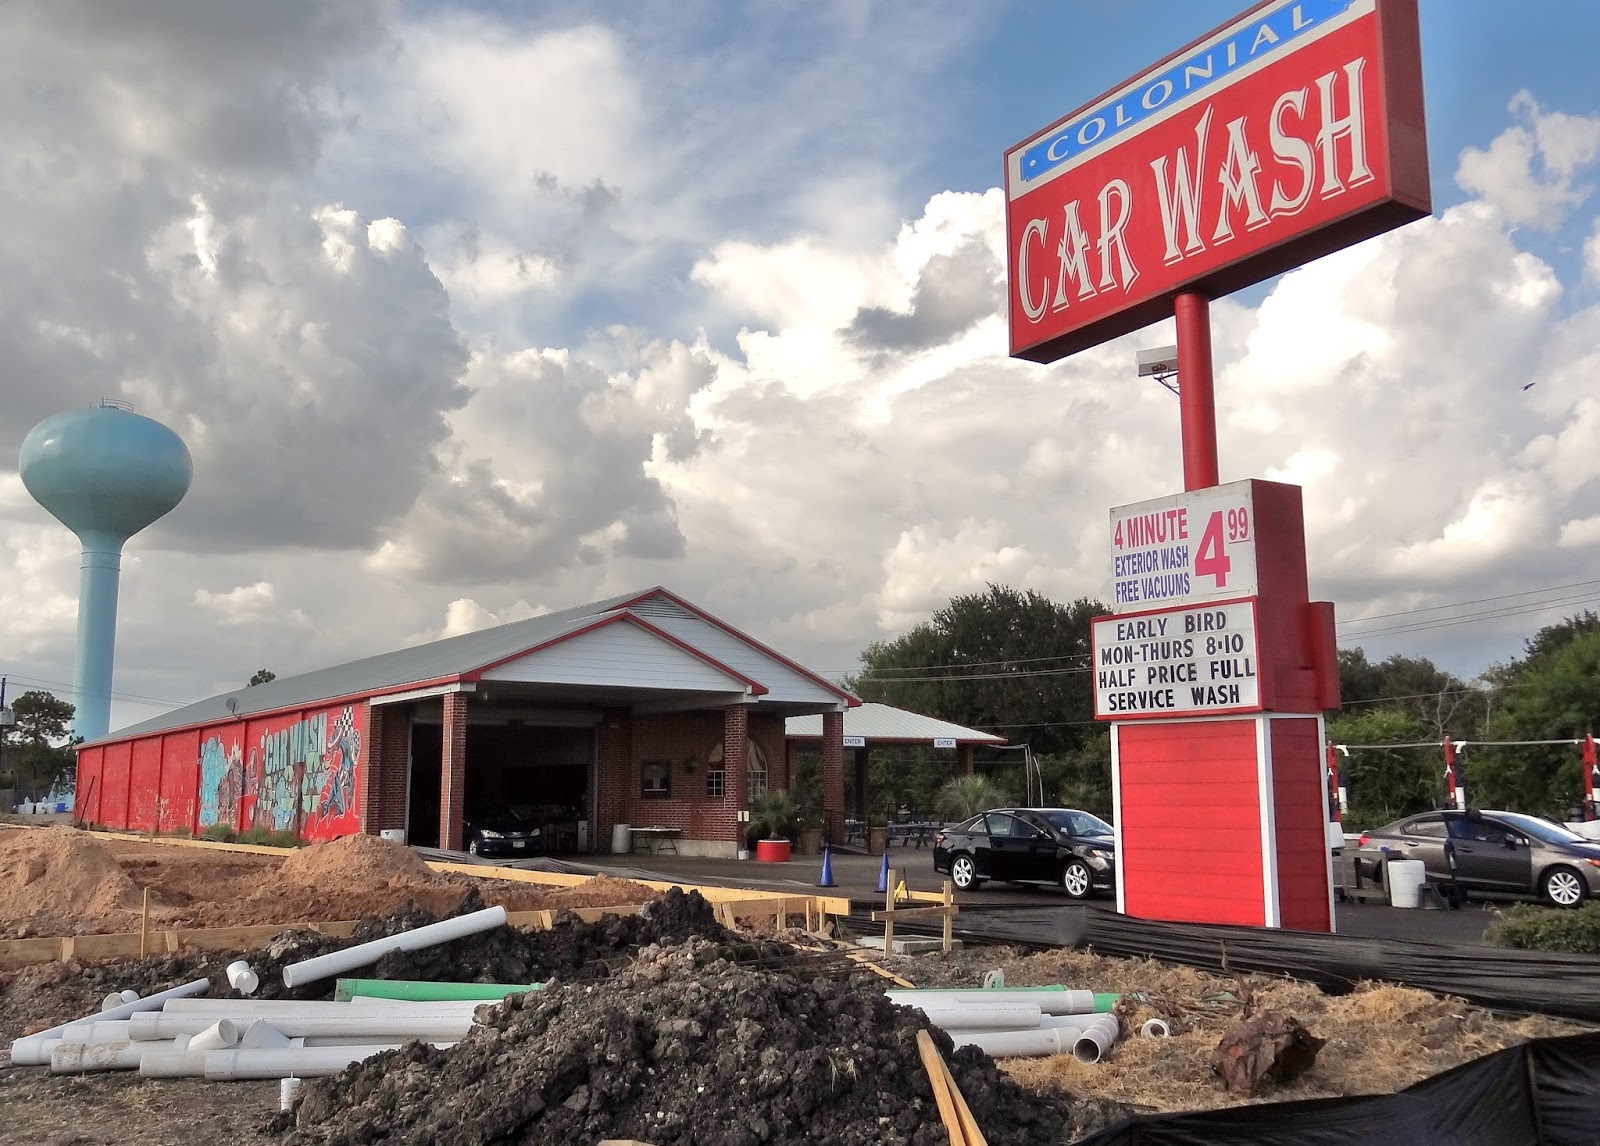 Colonial car wash adjoining construction site